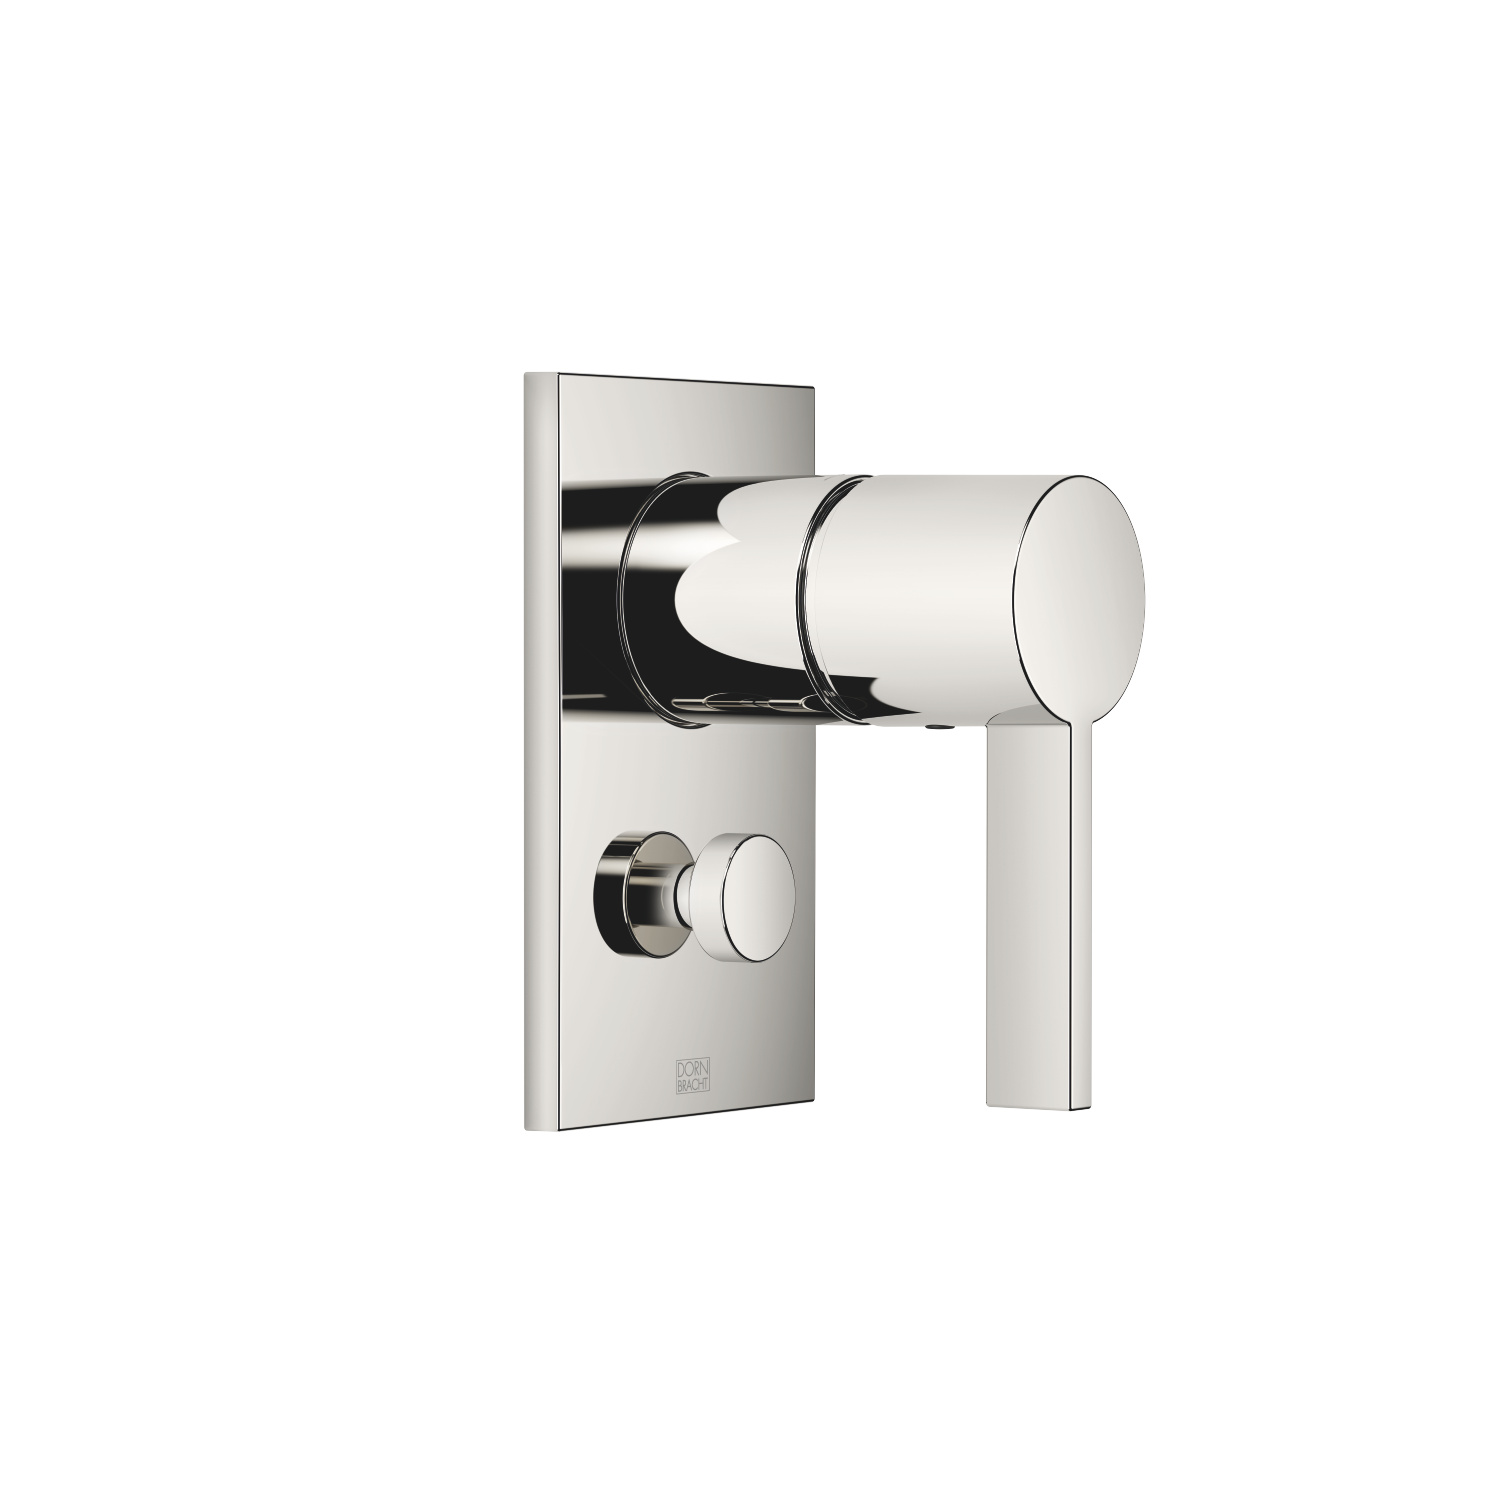 Concealed single-lever mixer with diverter - platinum